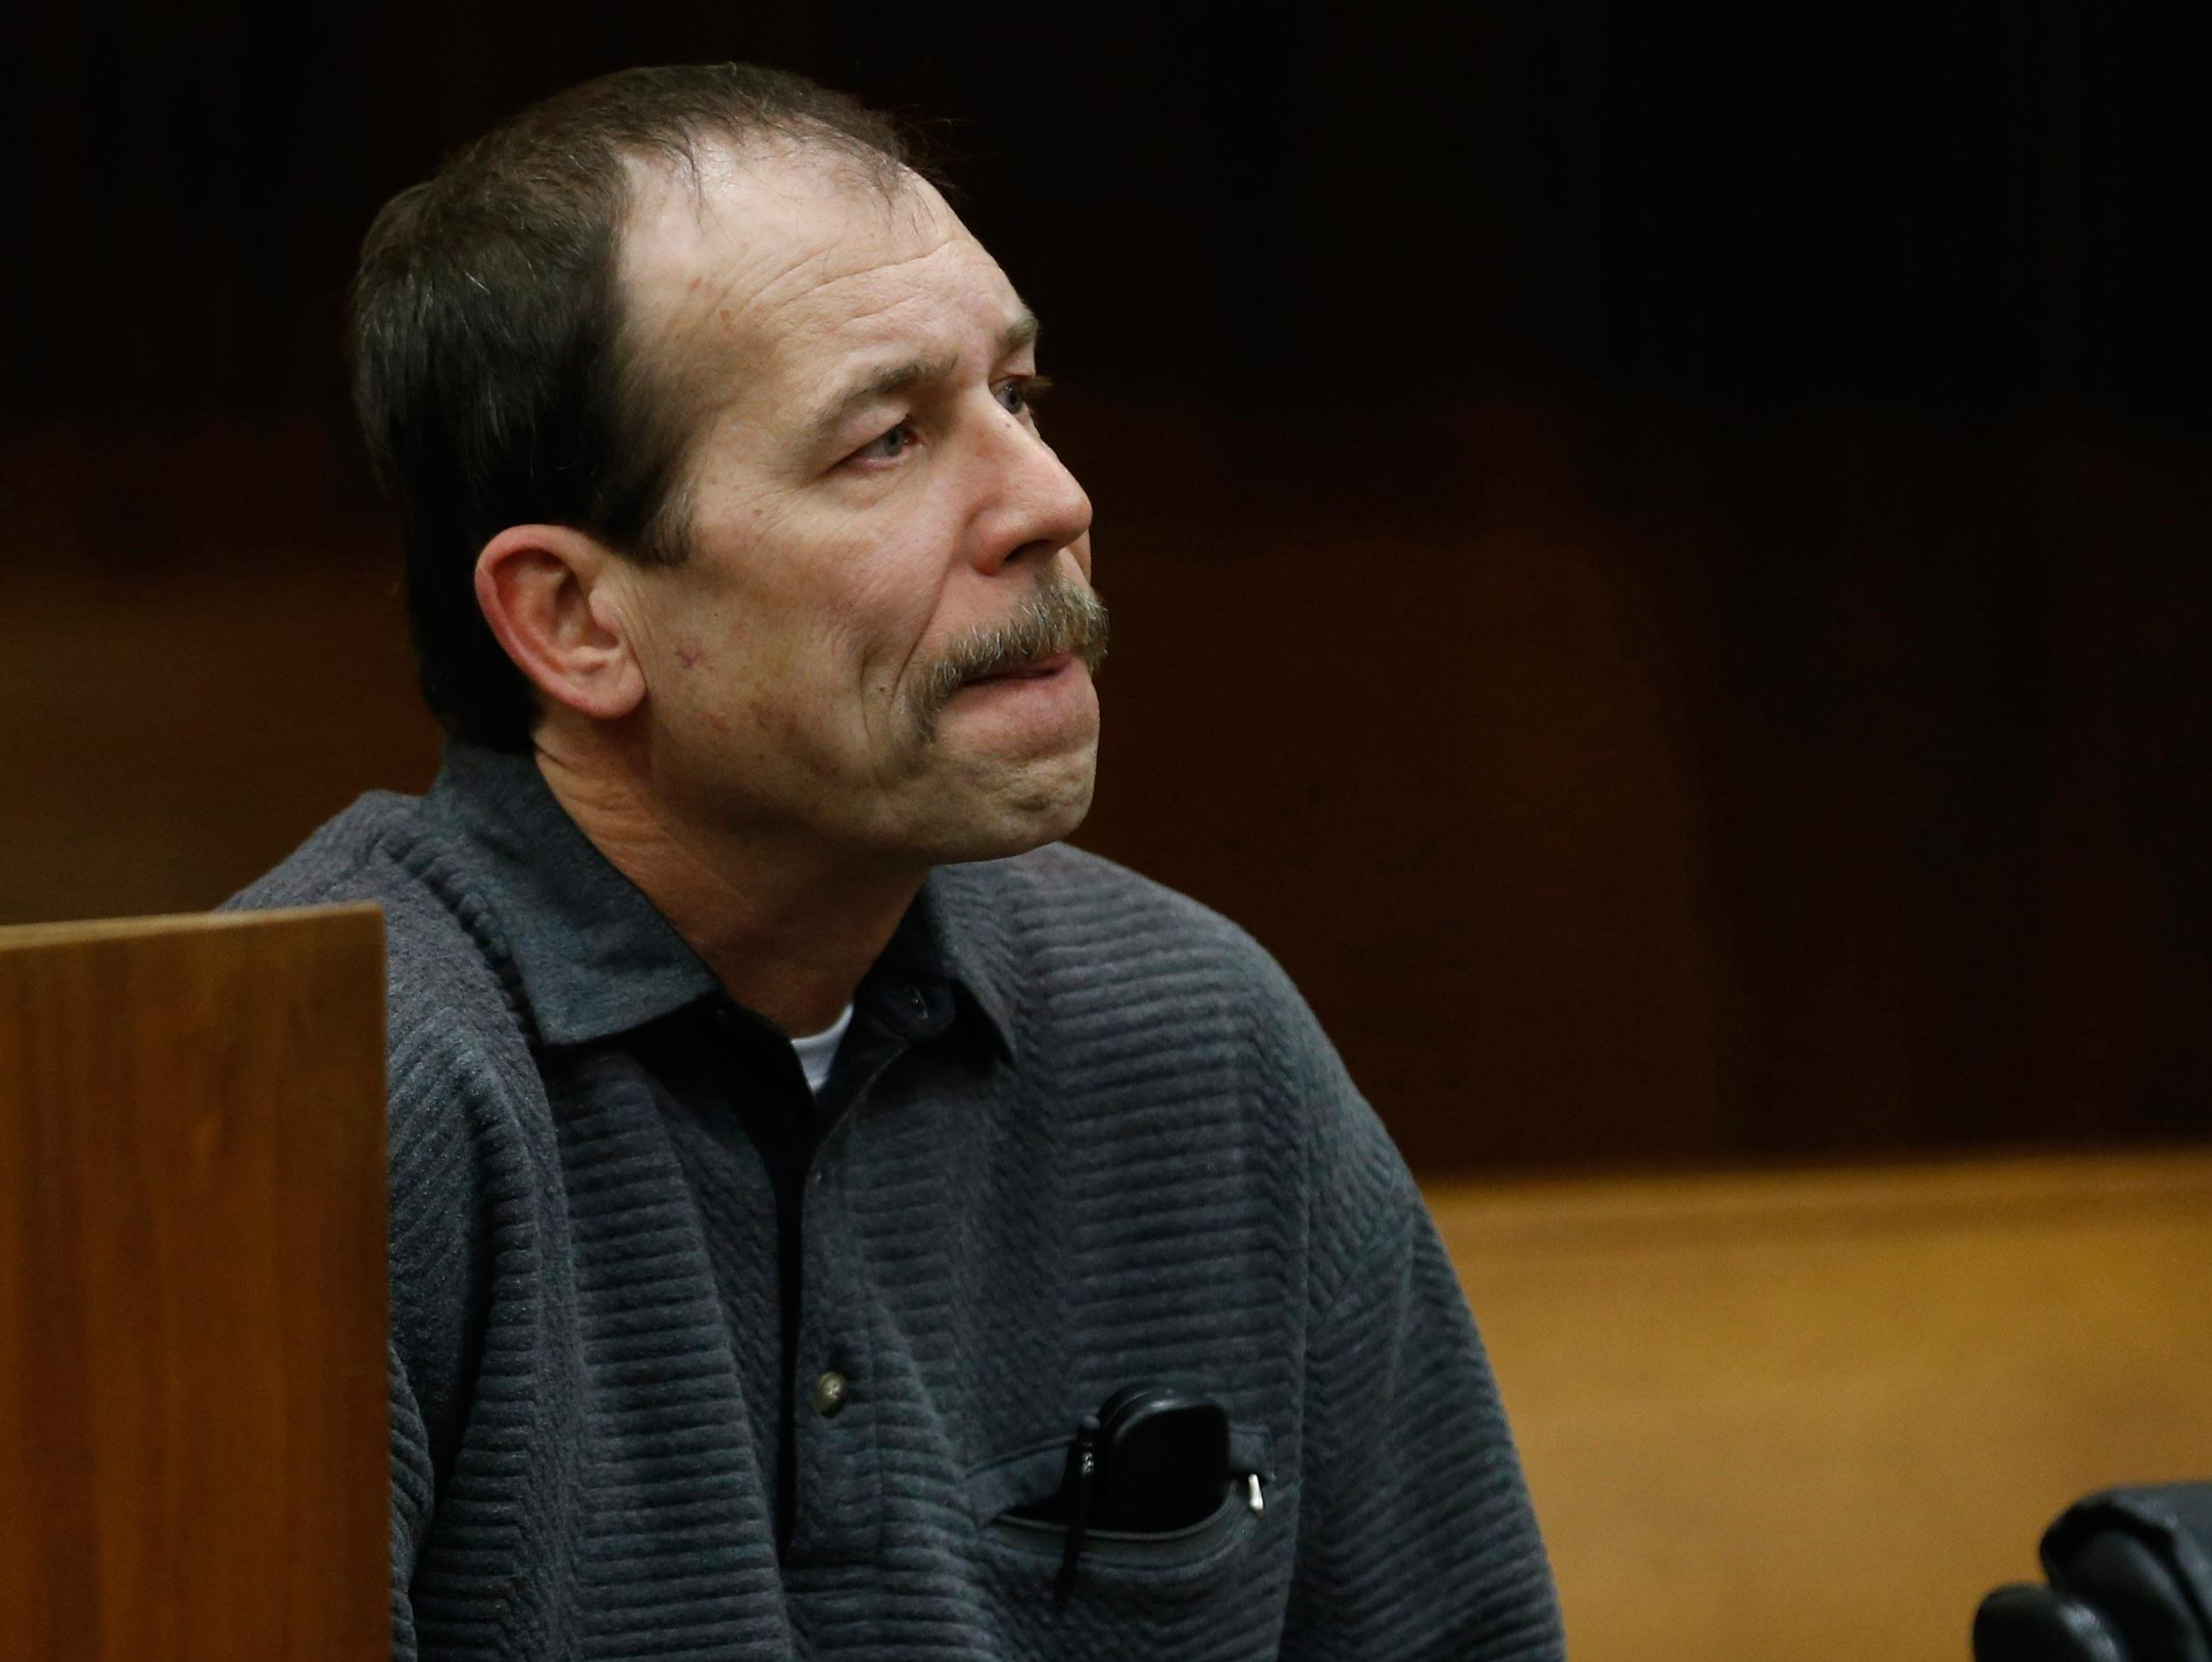 Image: File photo of Theodore Wafer sitting in the court room during his arraignment in Detroit, Michigan